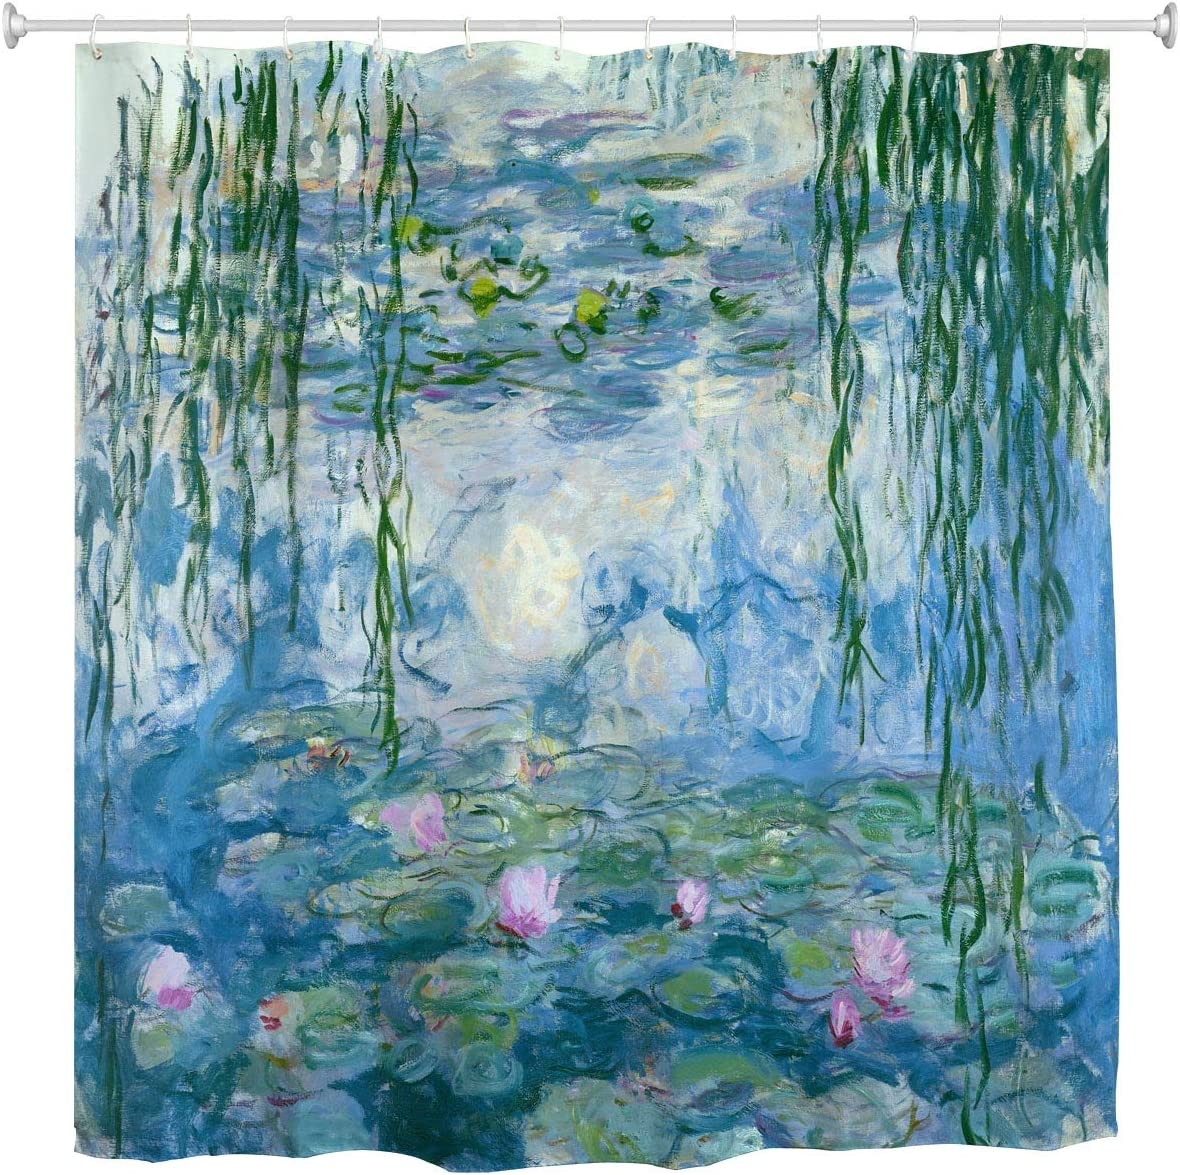 Shower Beauty products Curtain Water Lilies by Many popular brands Flower Claude Paintings Oil Monet